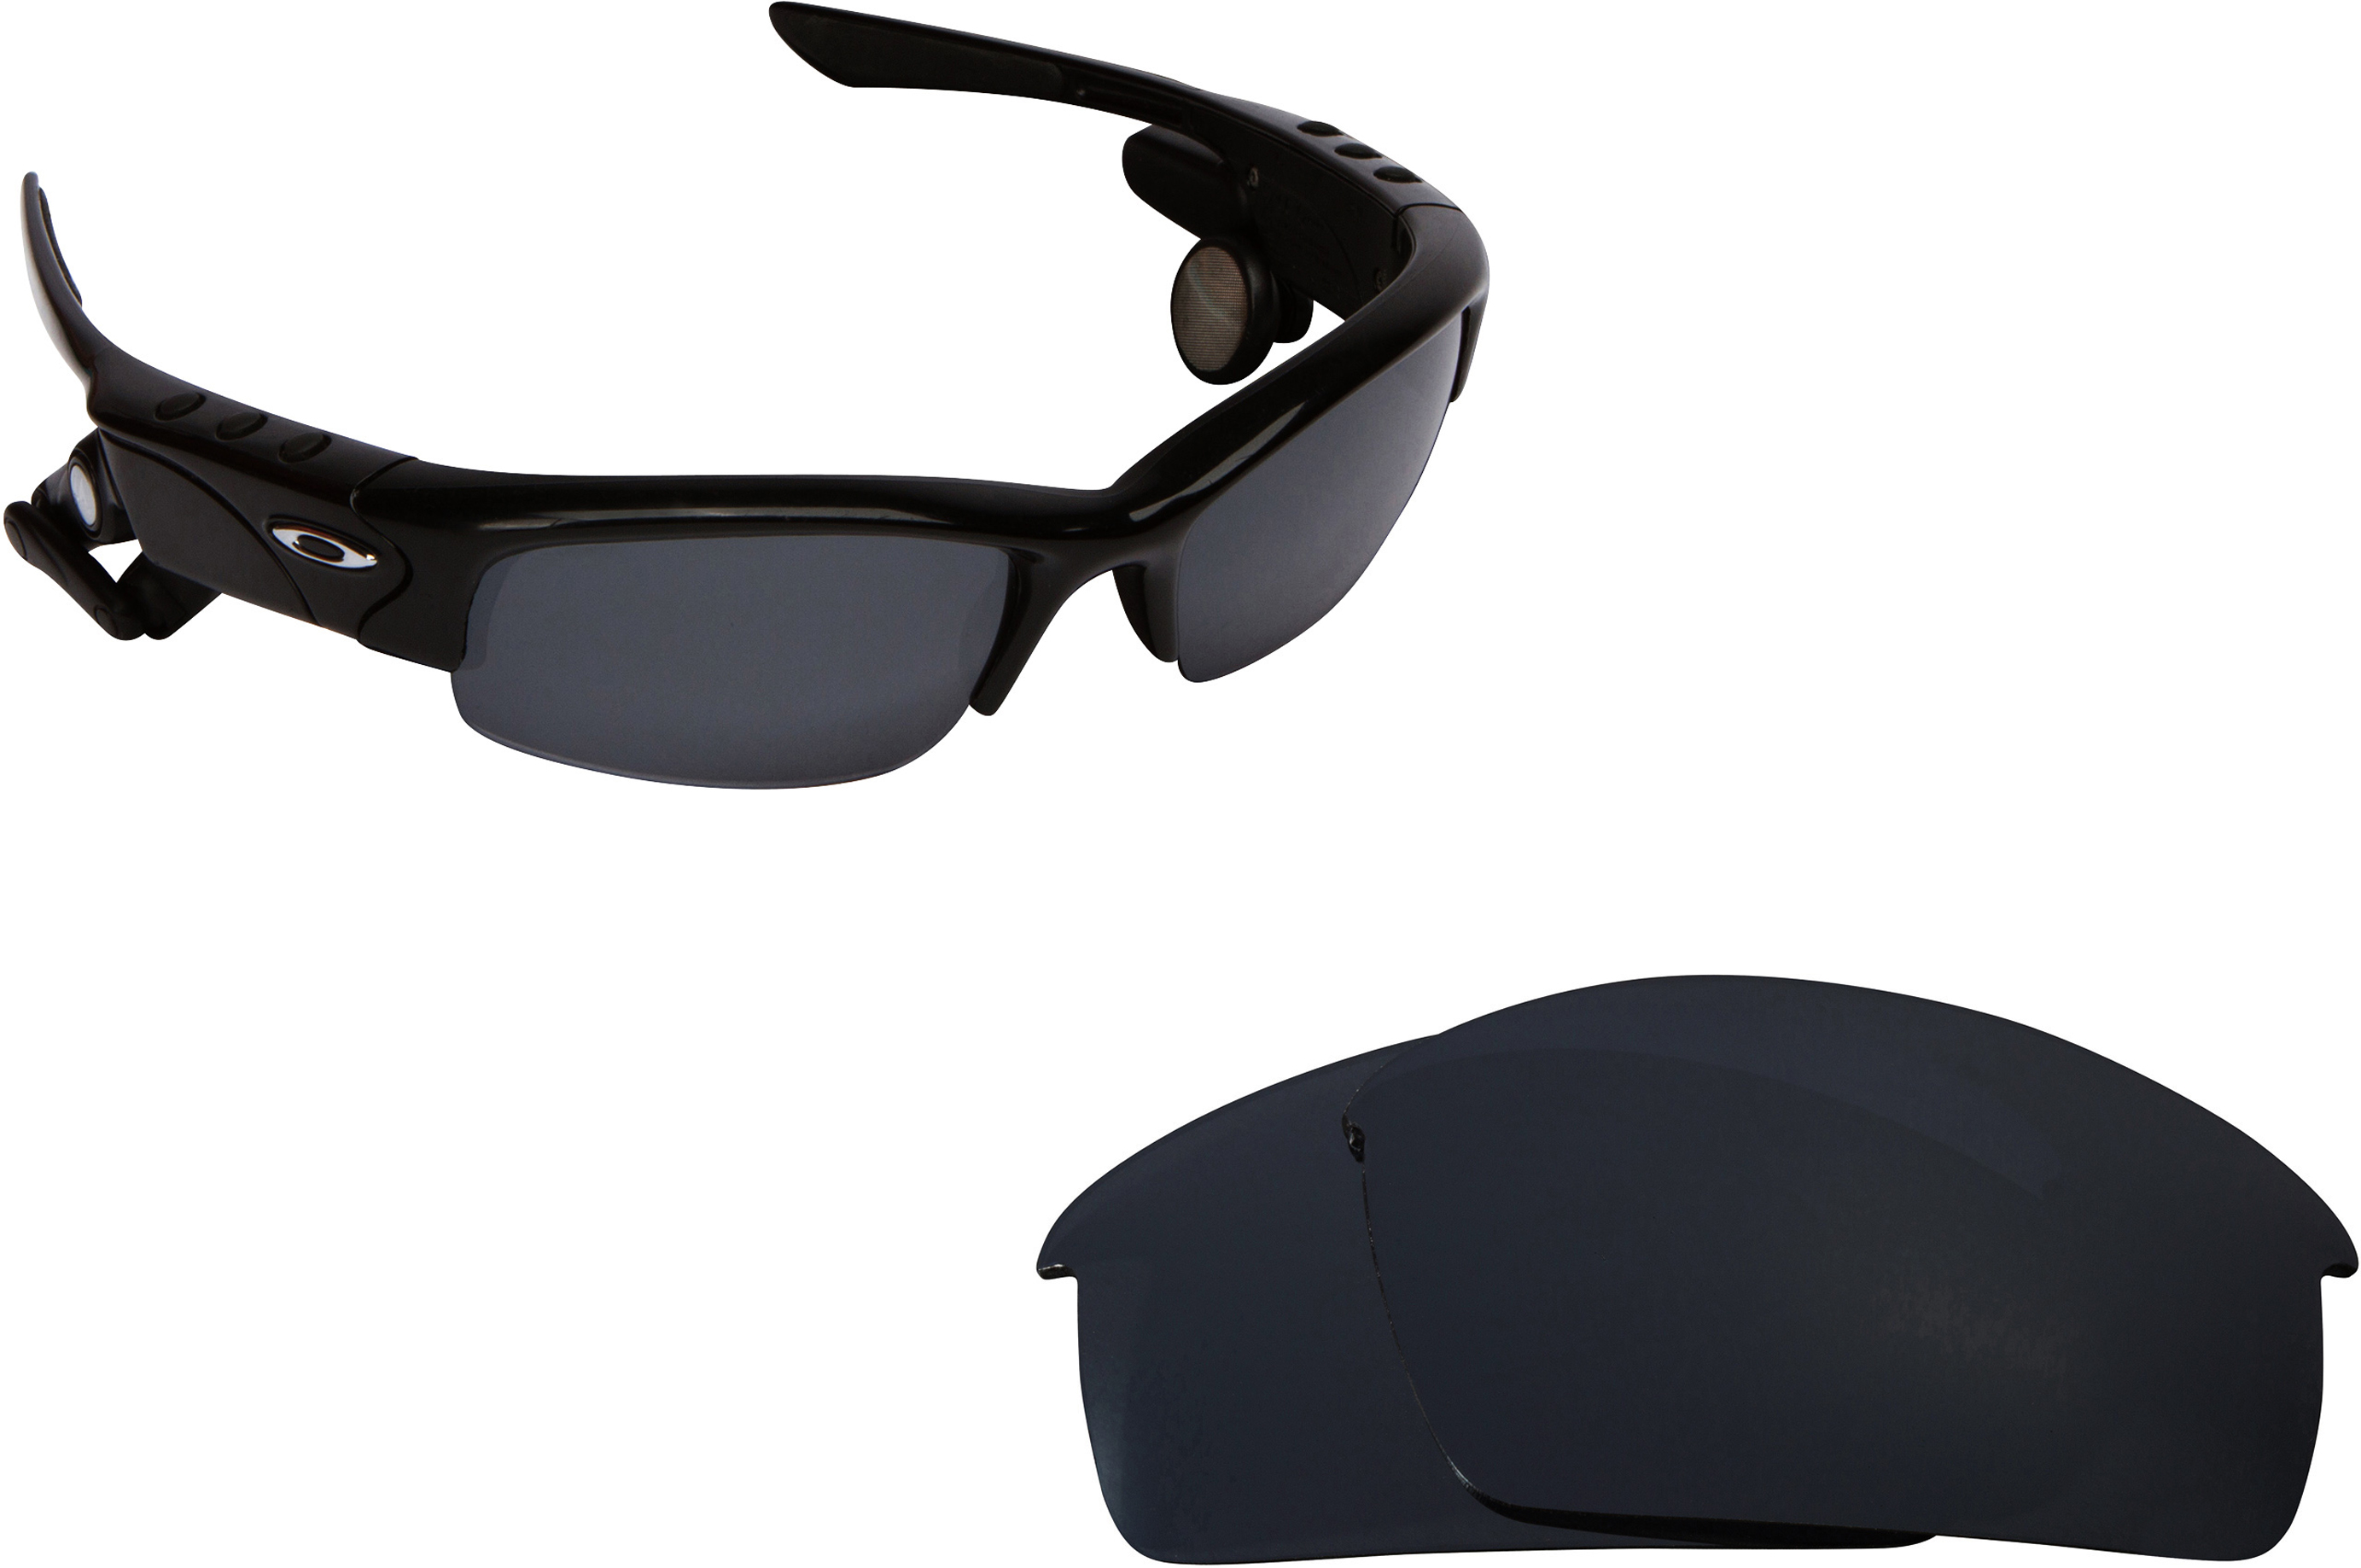 54f1a8e604 Oakley Black Iridium Lenses Mirrored « Heritage Malta